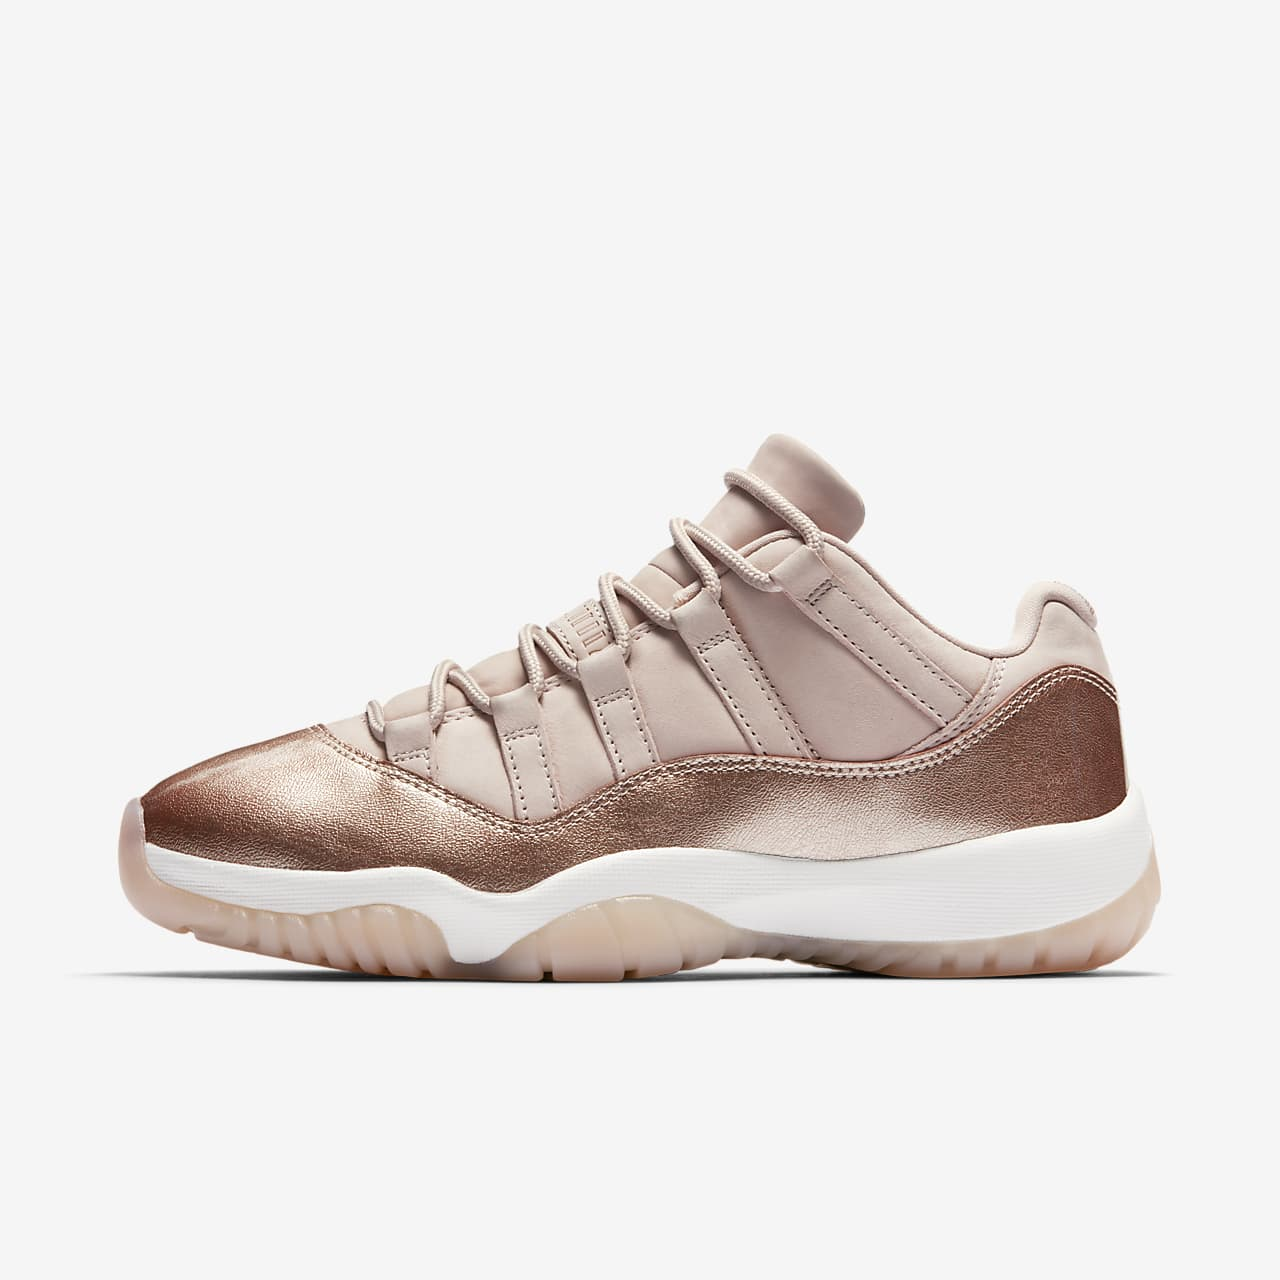 Air Jordan 11 Retro Low Women's Shoe